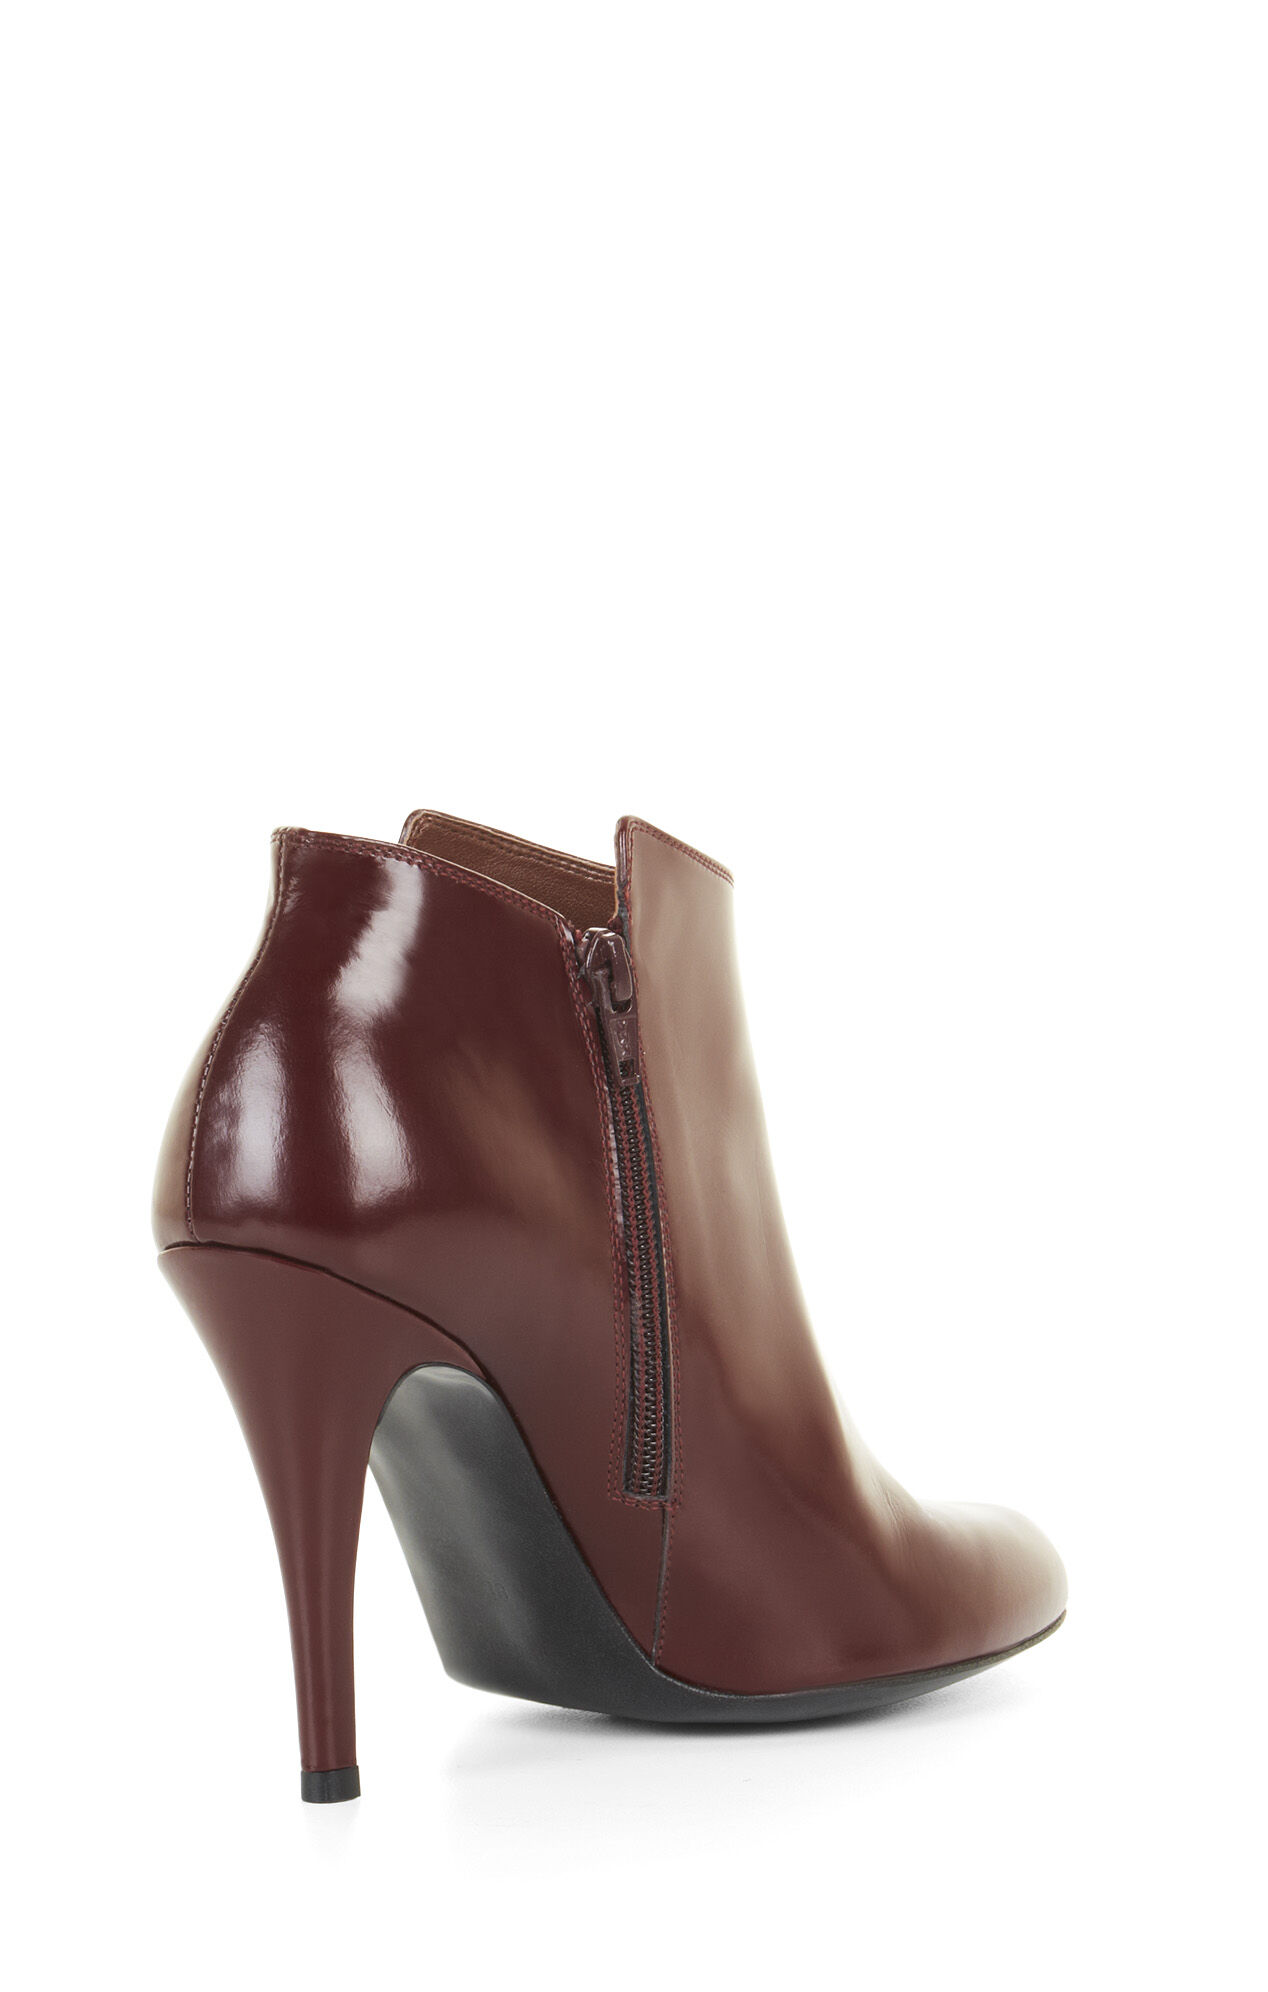 From peep-toe ankle booties to classic riding boots, Charlotte Russe has everything you need to look your hottest, even as the temps cool down. Show your fearless side in a pair of combat boots, or dress to impress in heeled pointed toe booties. With over-the-knee boots to platform booties, we have what you need—even on a budget.